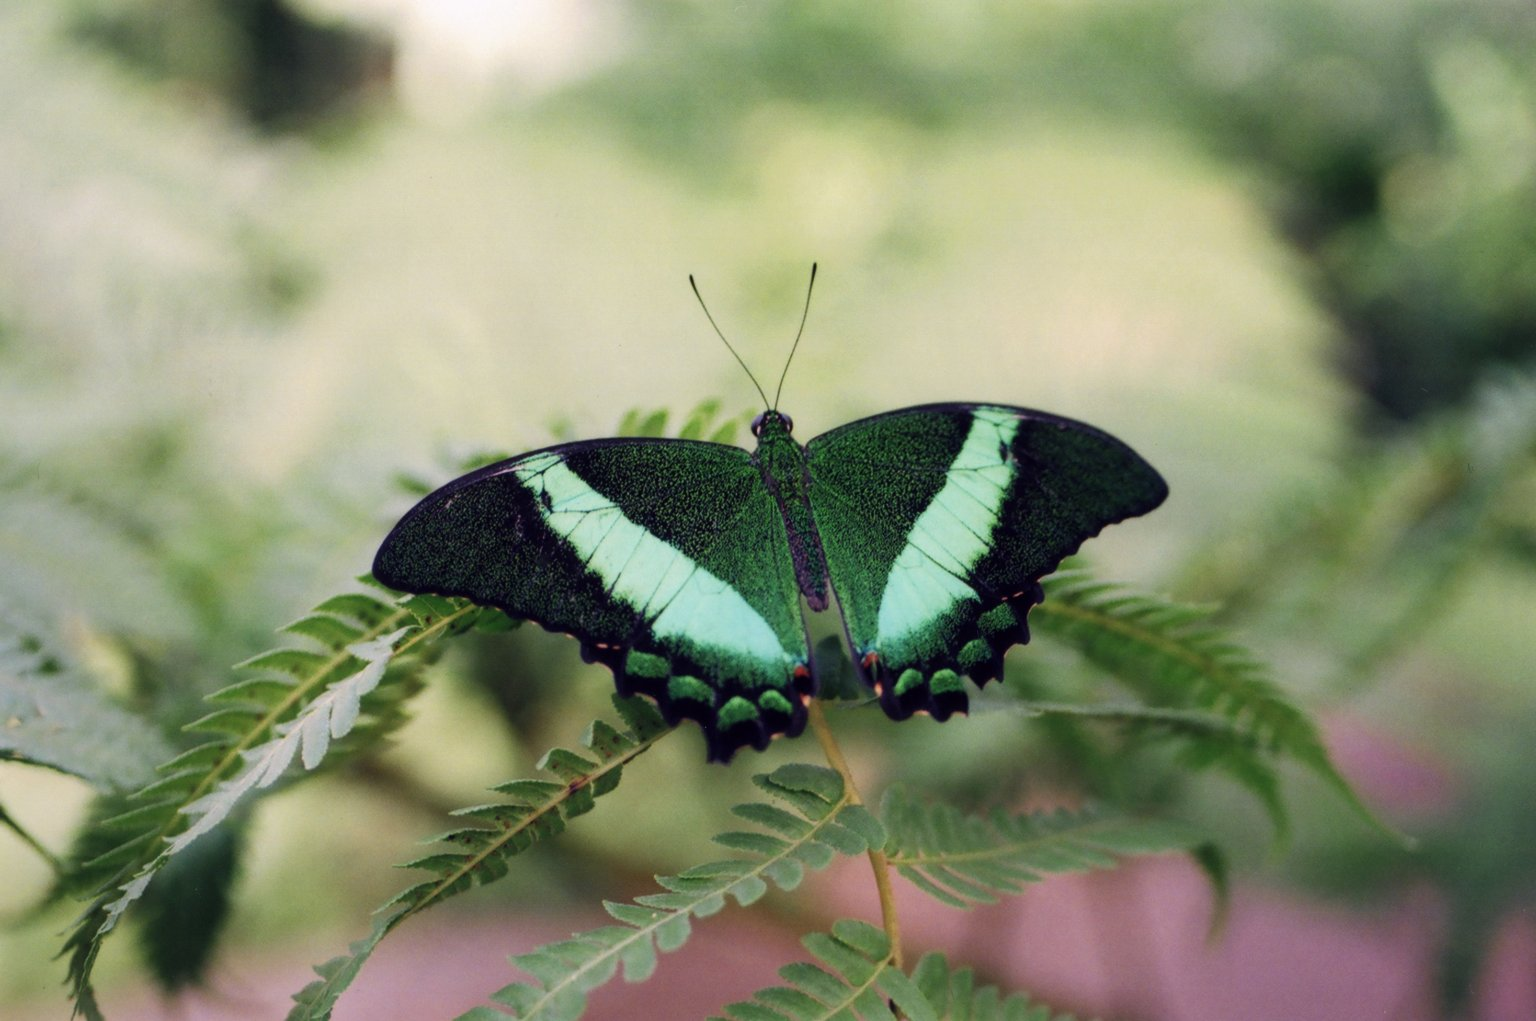 Close up of green butterfly on leaf